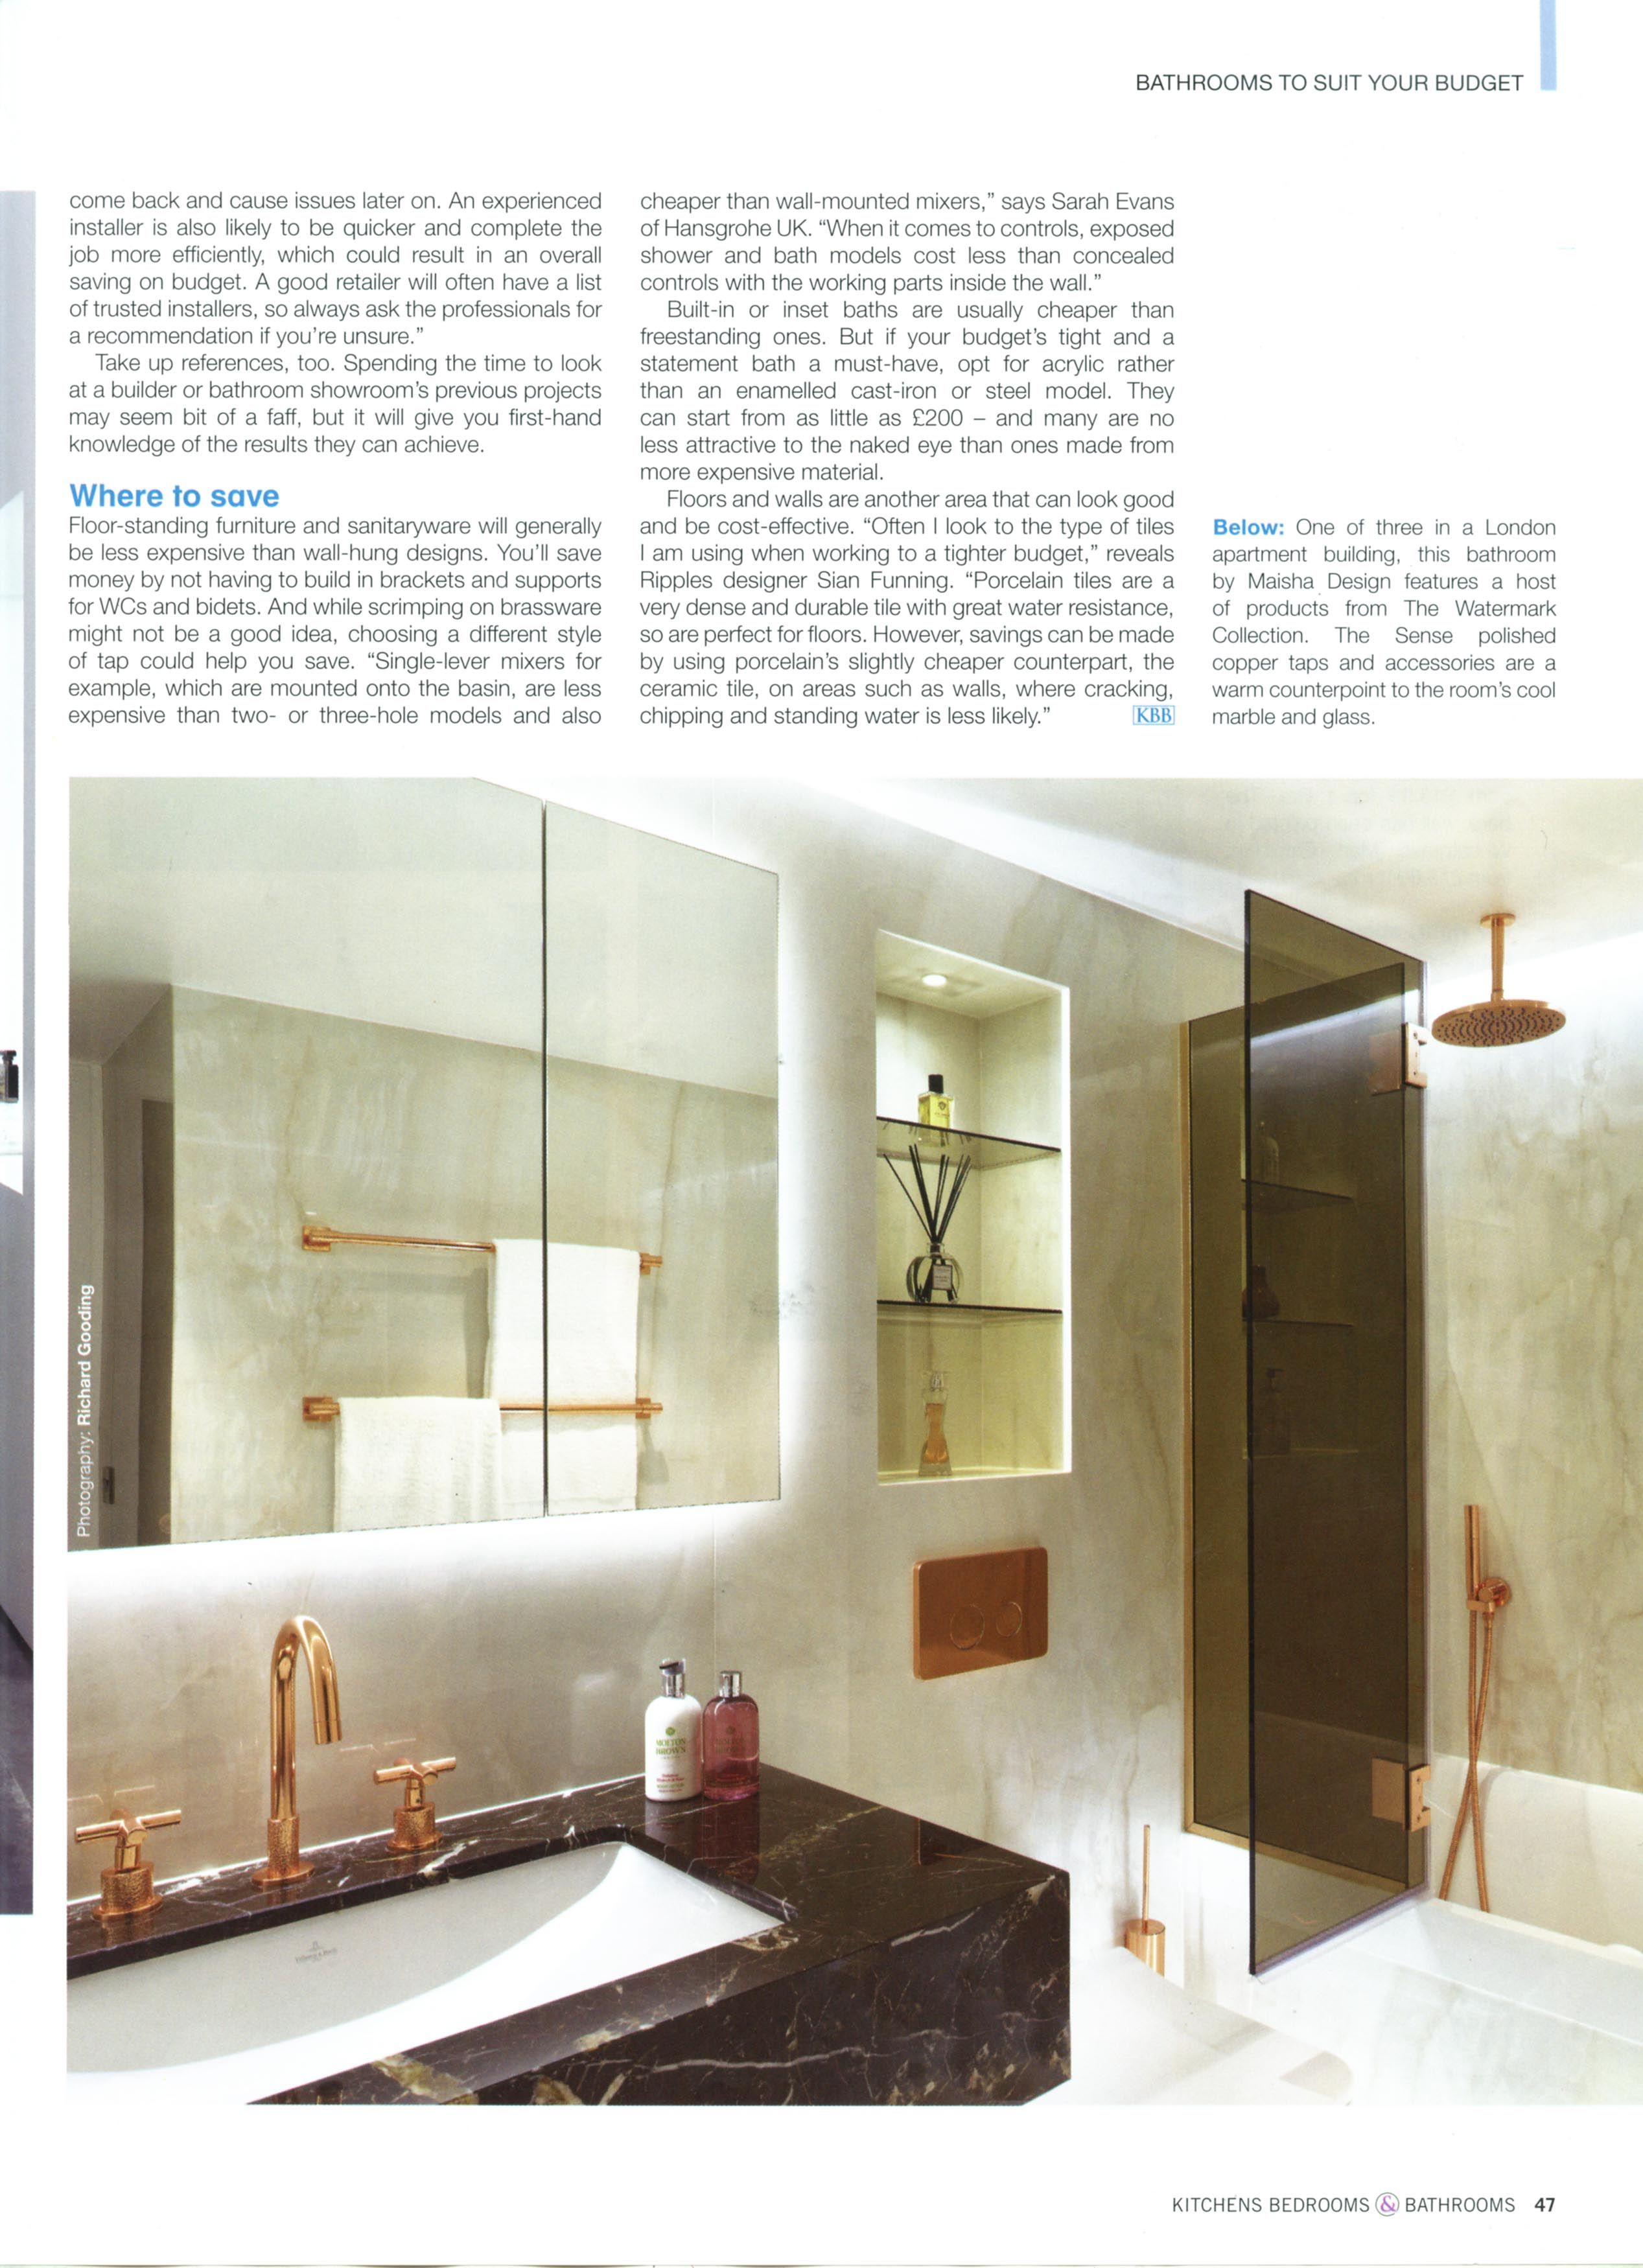 This bathroom features a host of products from The Watermark ...